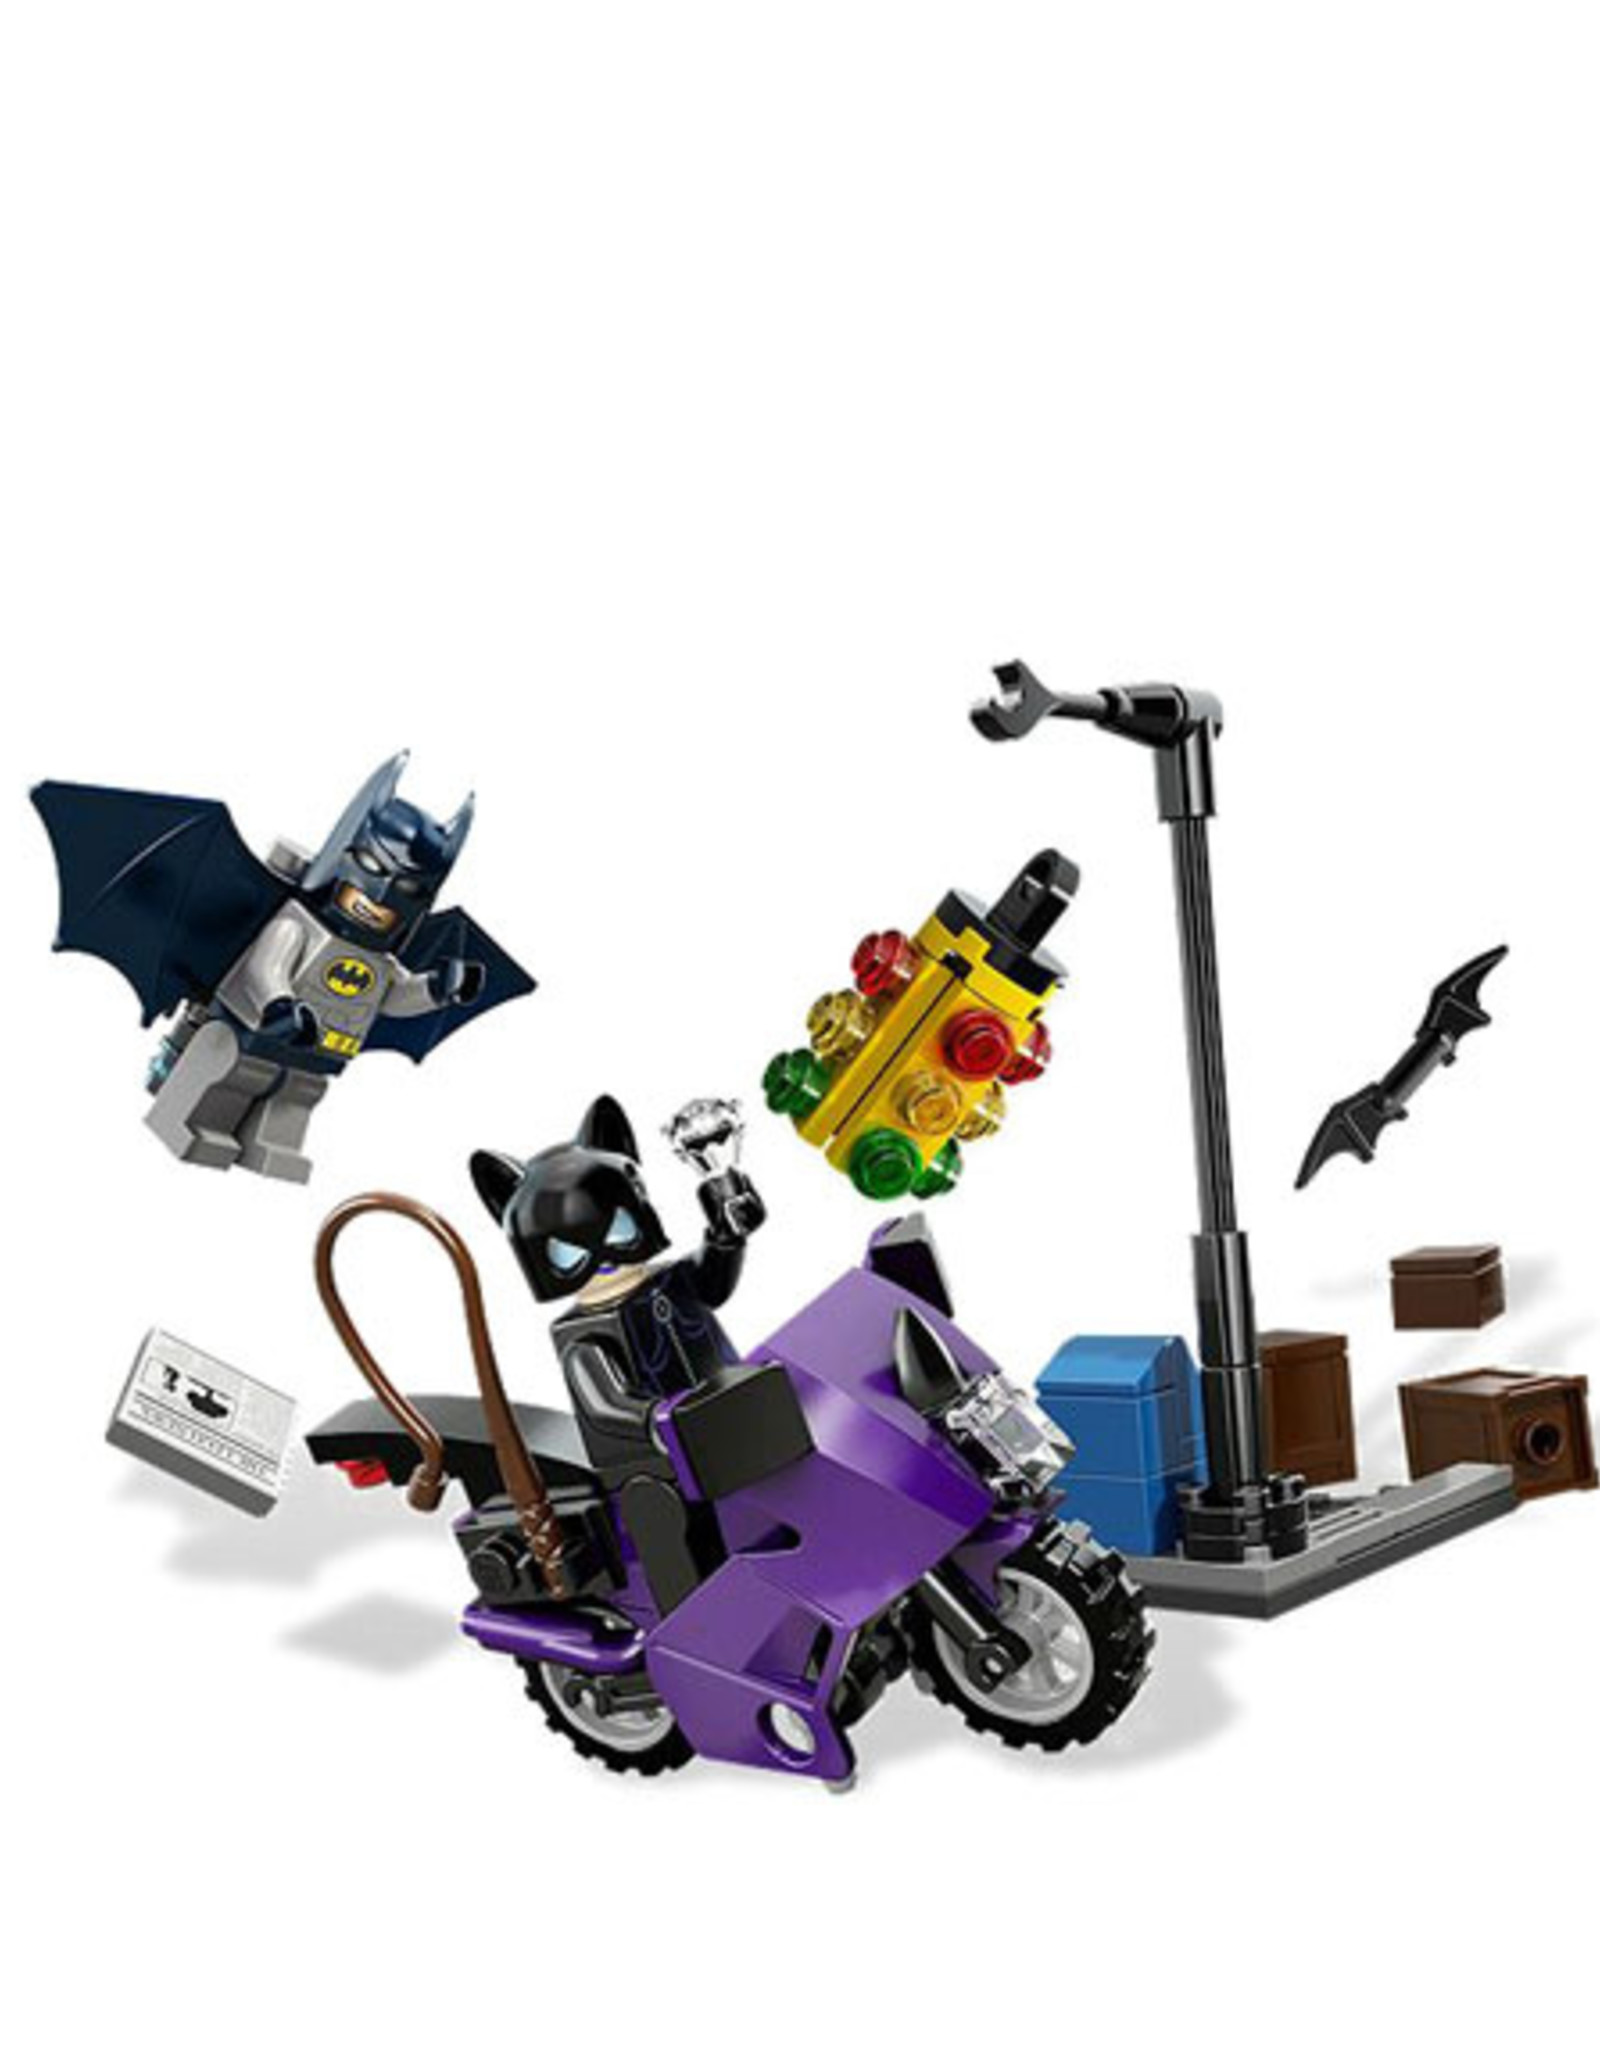 LEGO LEGO 6858 Catwoman Catcycle City Chase SUPER HEROES